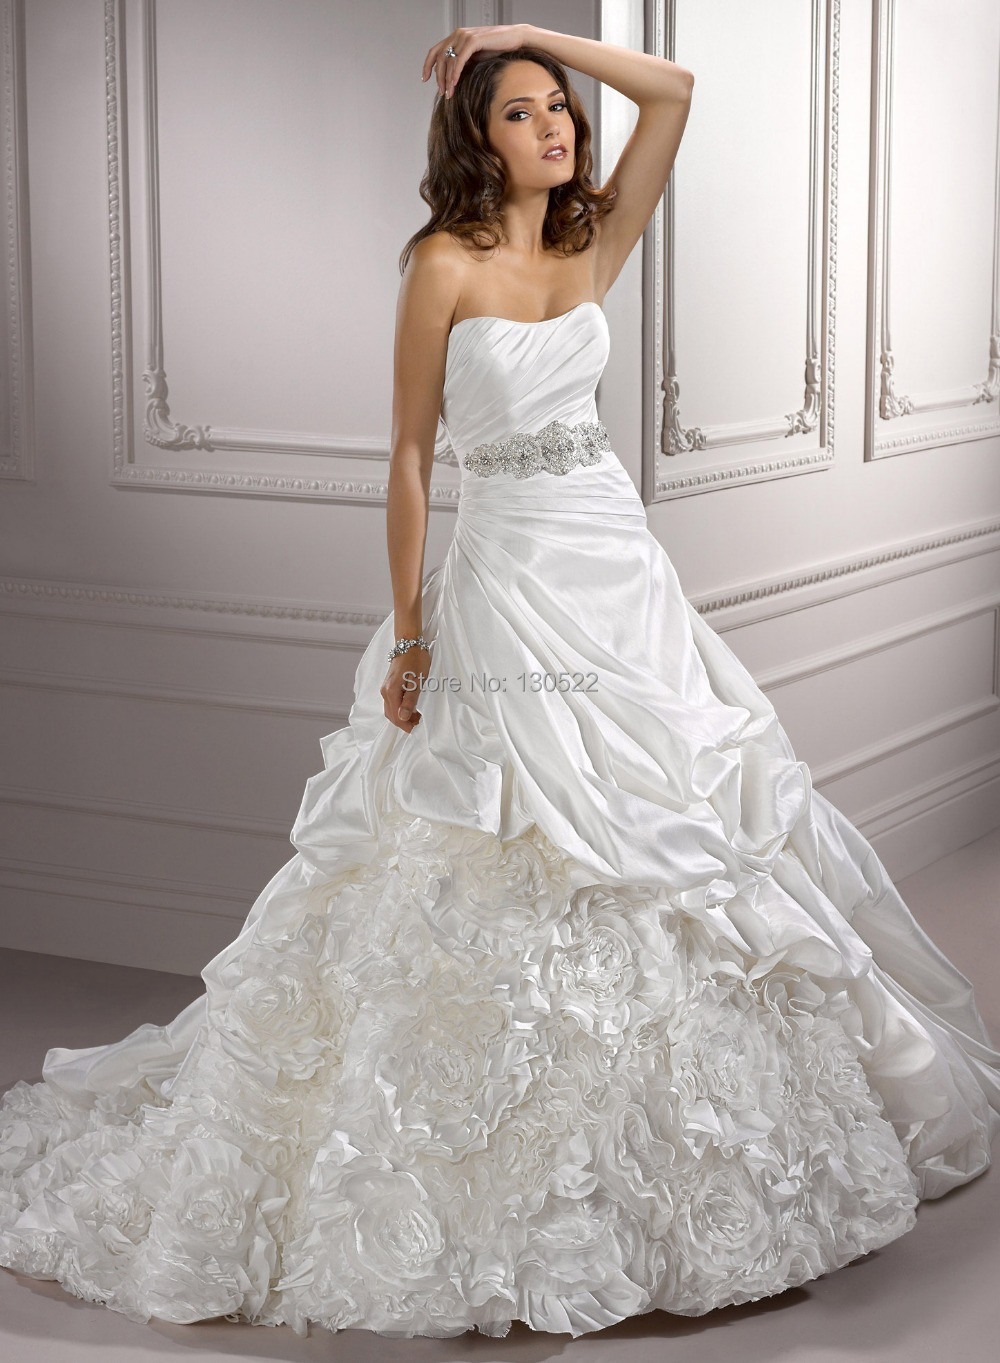 Free Shipping We 0847 Strapless Italian Wedding Dress With Black Belt Vintage Traditional In Dresses From Weddings